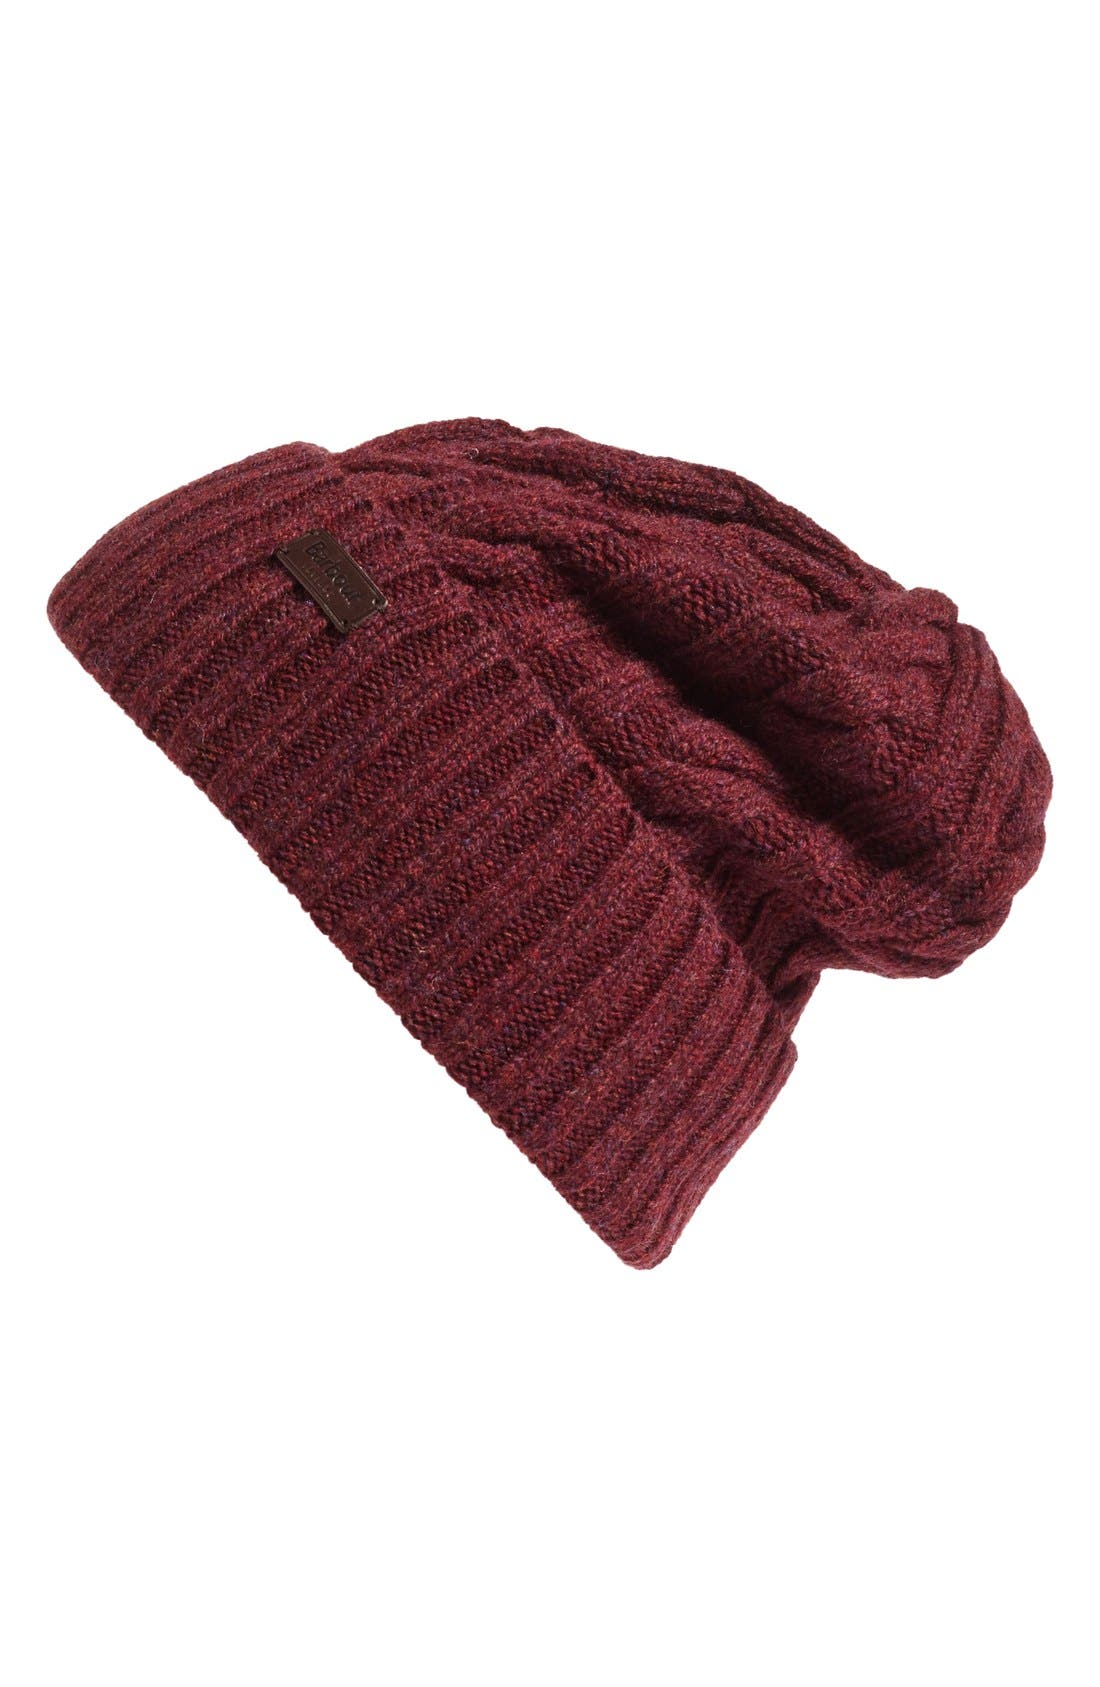 Alternate Image 1 Selected - Barbour Lambswool Cable Knit Hat